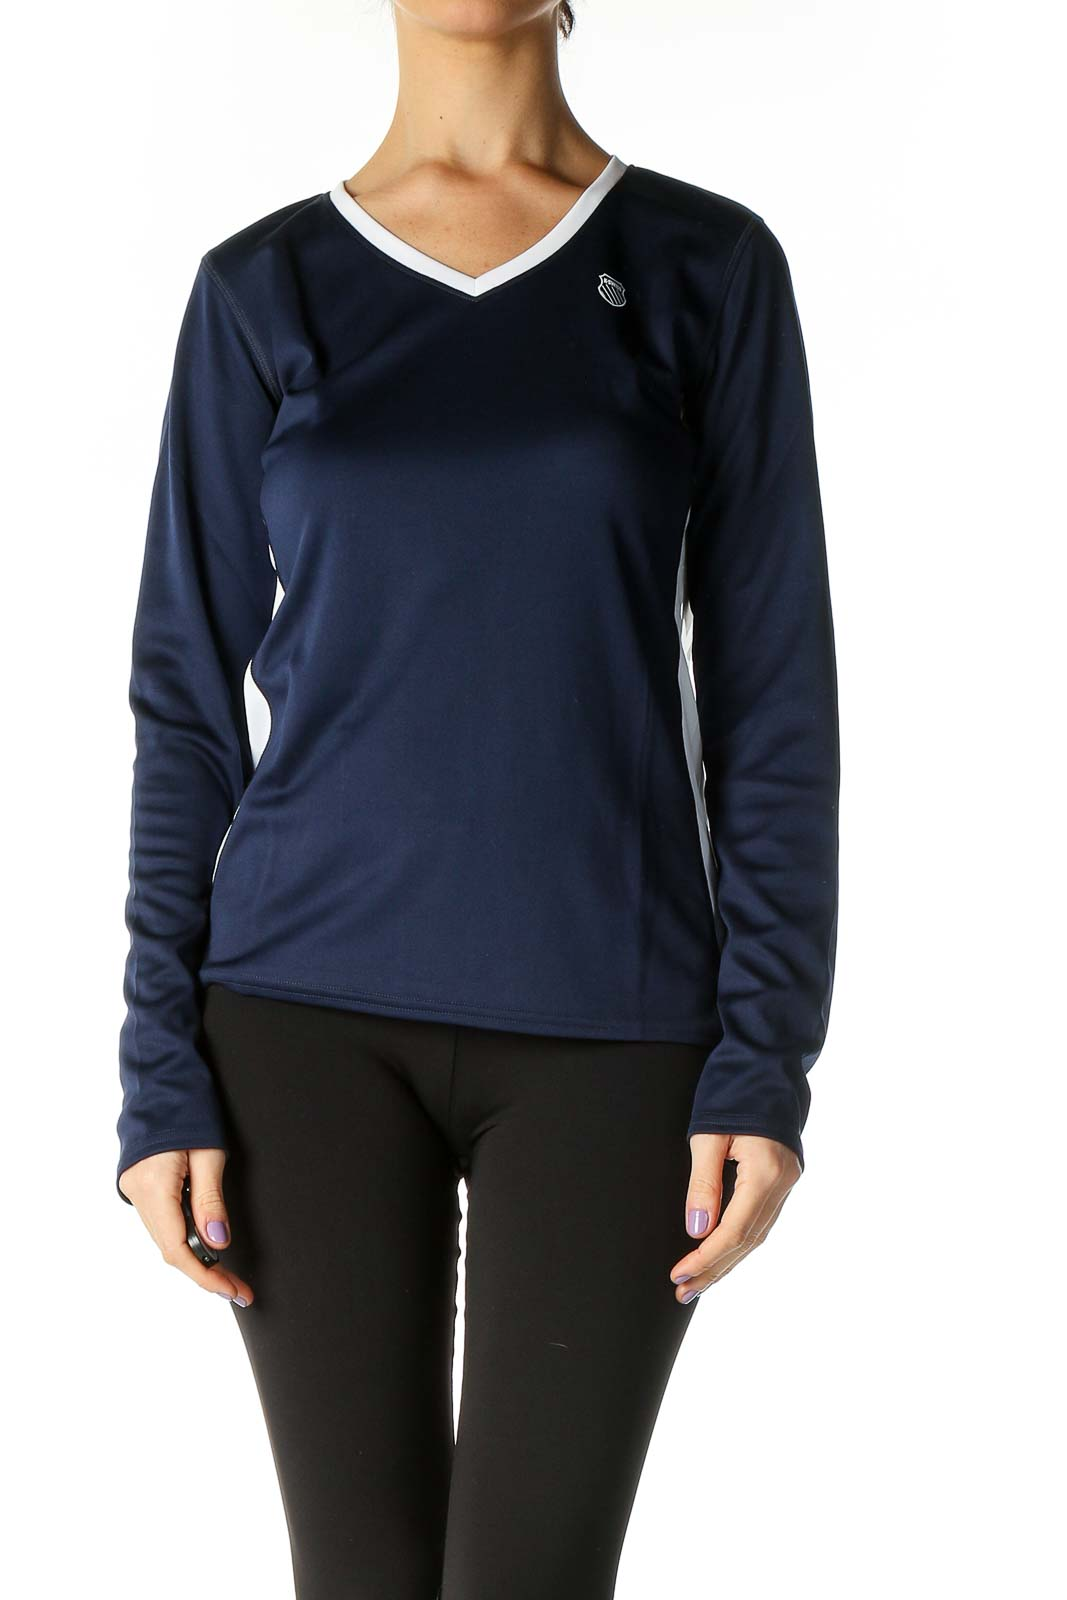 Blue Solid Sport Top Front